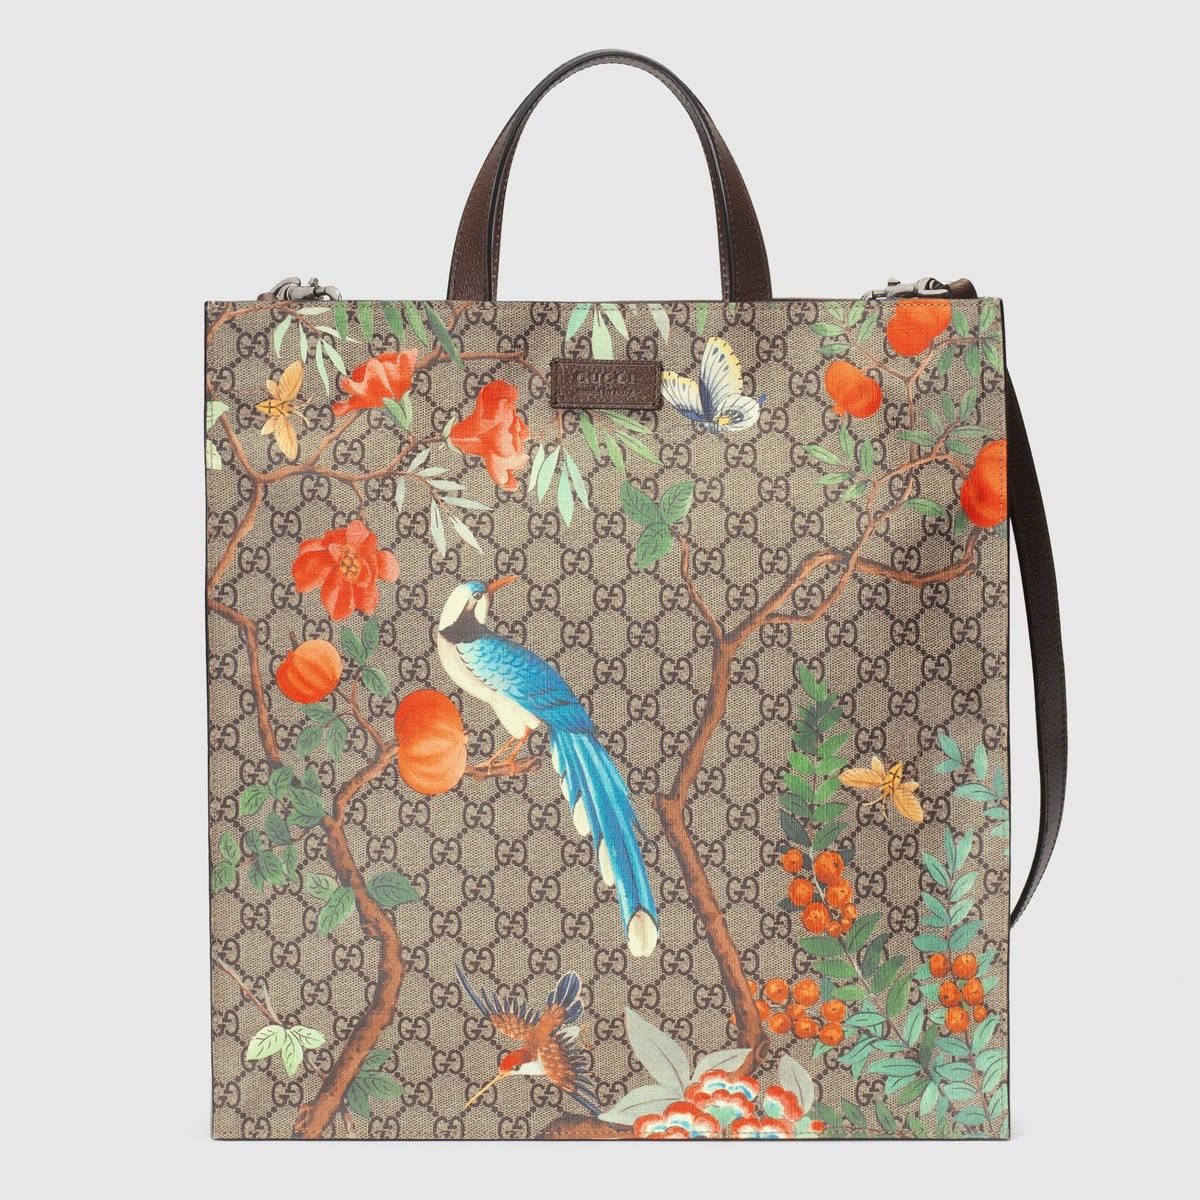 9252c3f0f GUCCI Gucci Tian Soft Gg Supreme Tote - Gucci Tian Print. #gucci #bags  #canvas #tote #lining #shoulder bags #suede #hand bags #